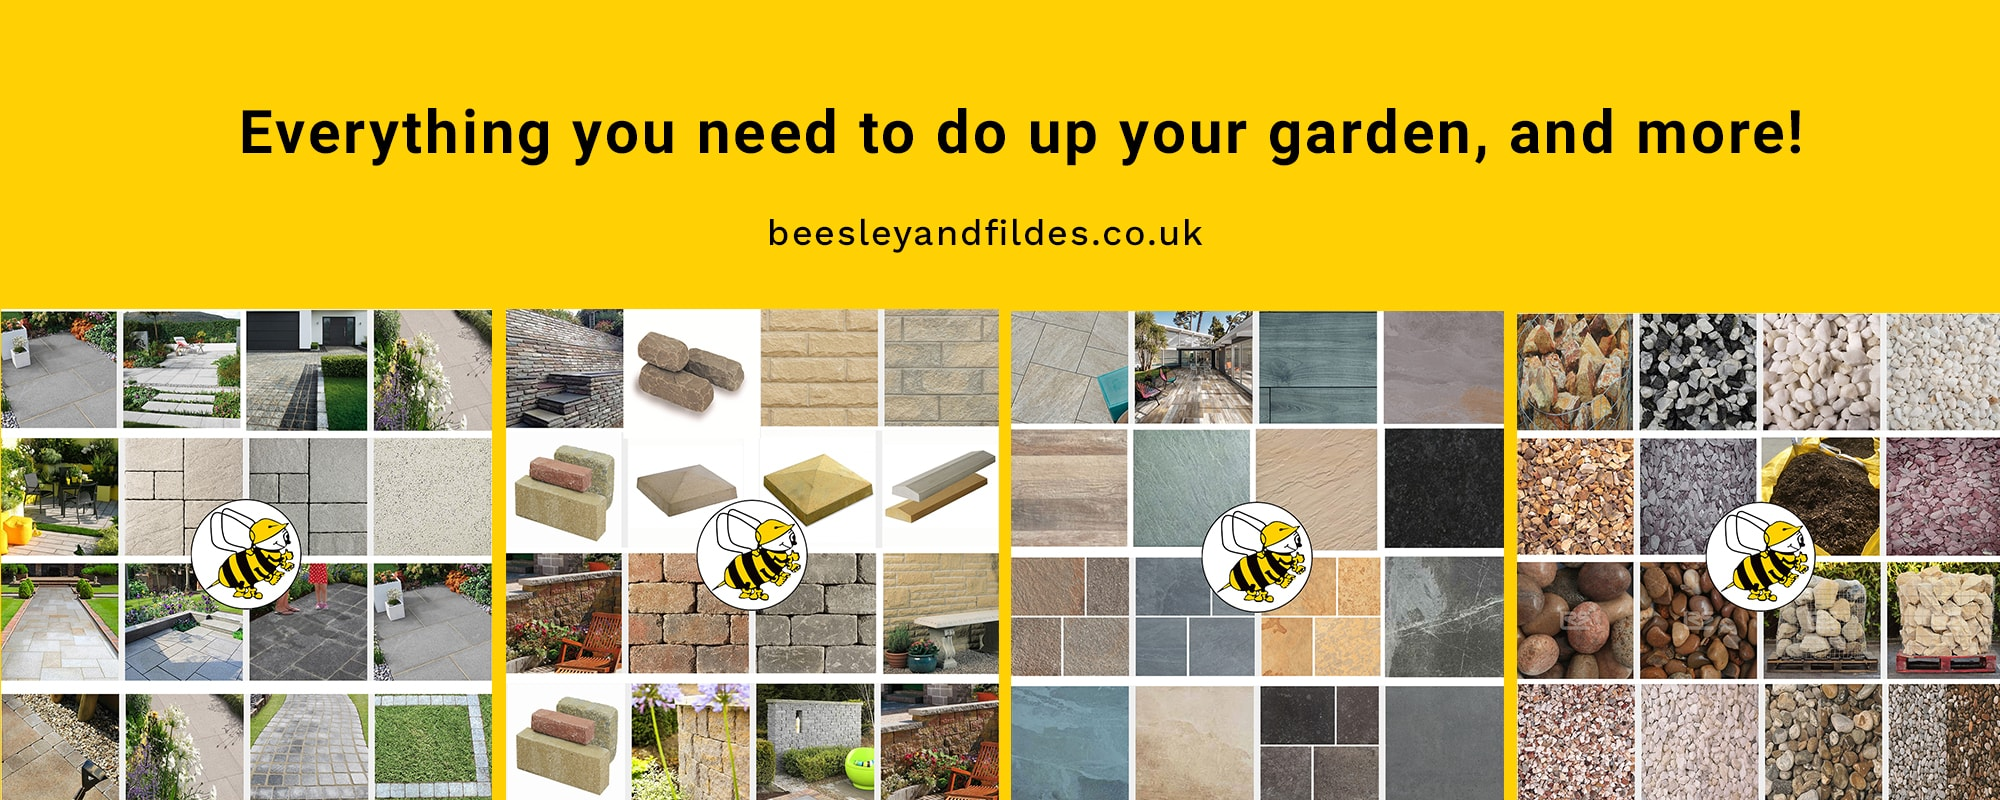 Buy landscaping materials - Beesley & Fildes - swinton - Builders Merchant